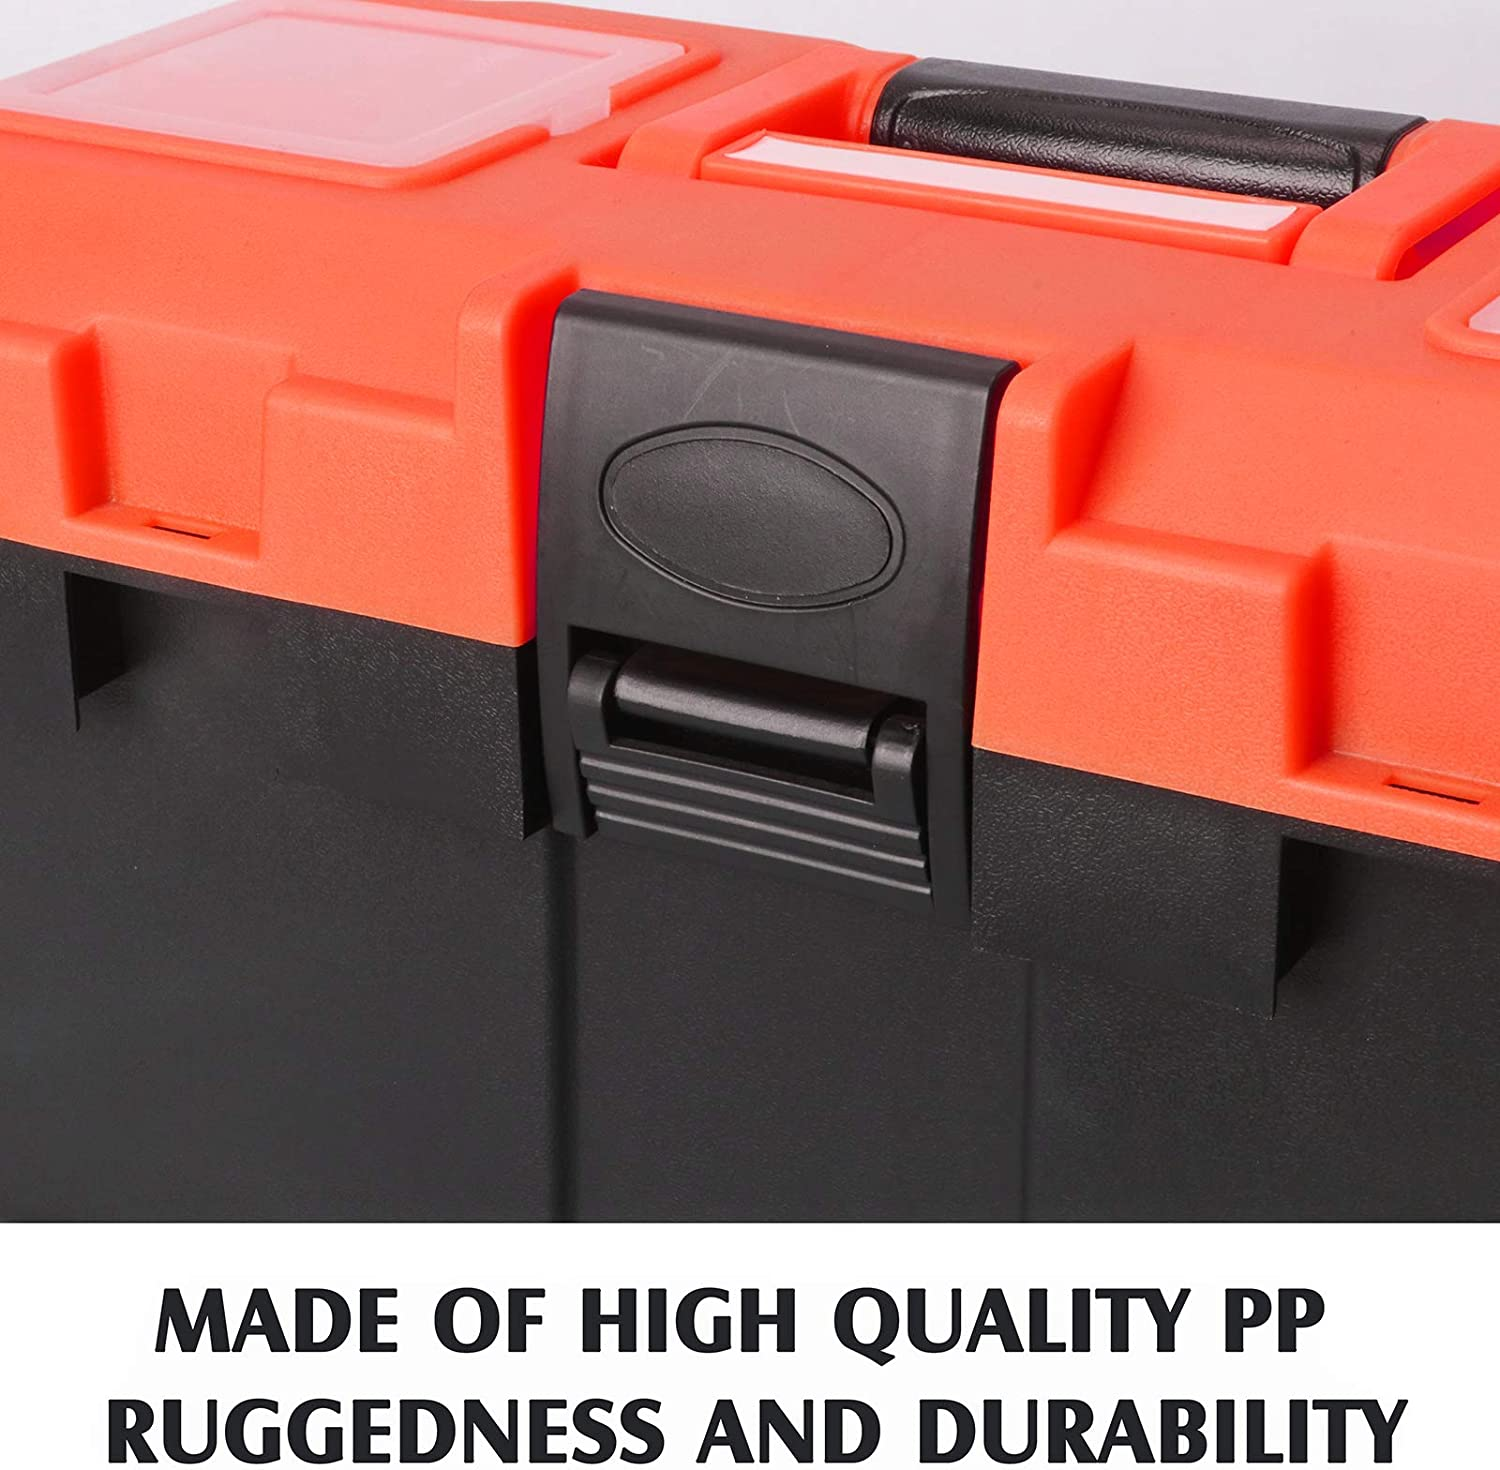 nuts MIXPOWER 14-inch Plastic Toolbox and Removable Tray used for Organization and Storage Essential Toolbox for storing screws tool or craft storage,Black//Orange